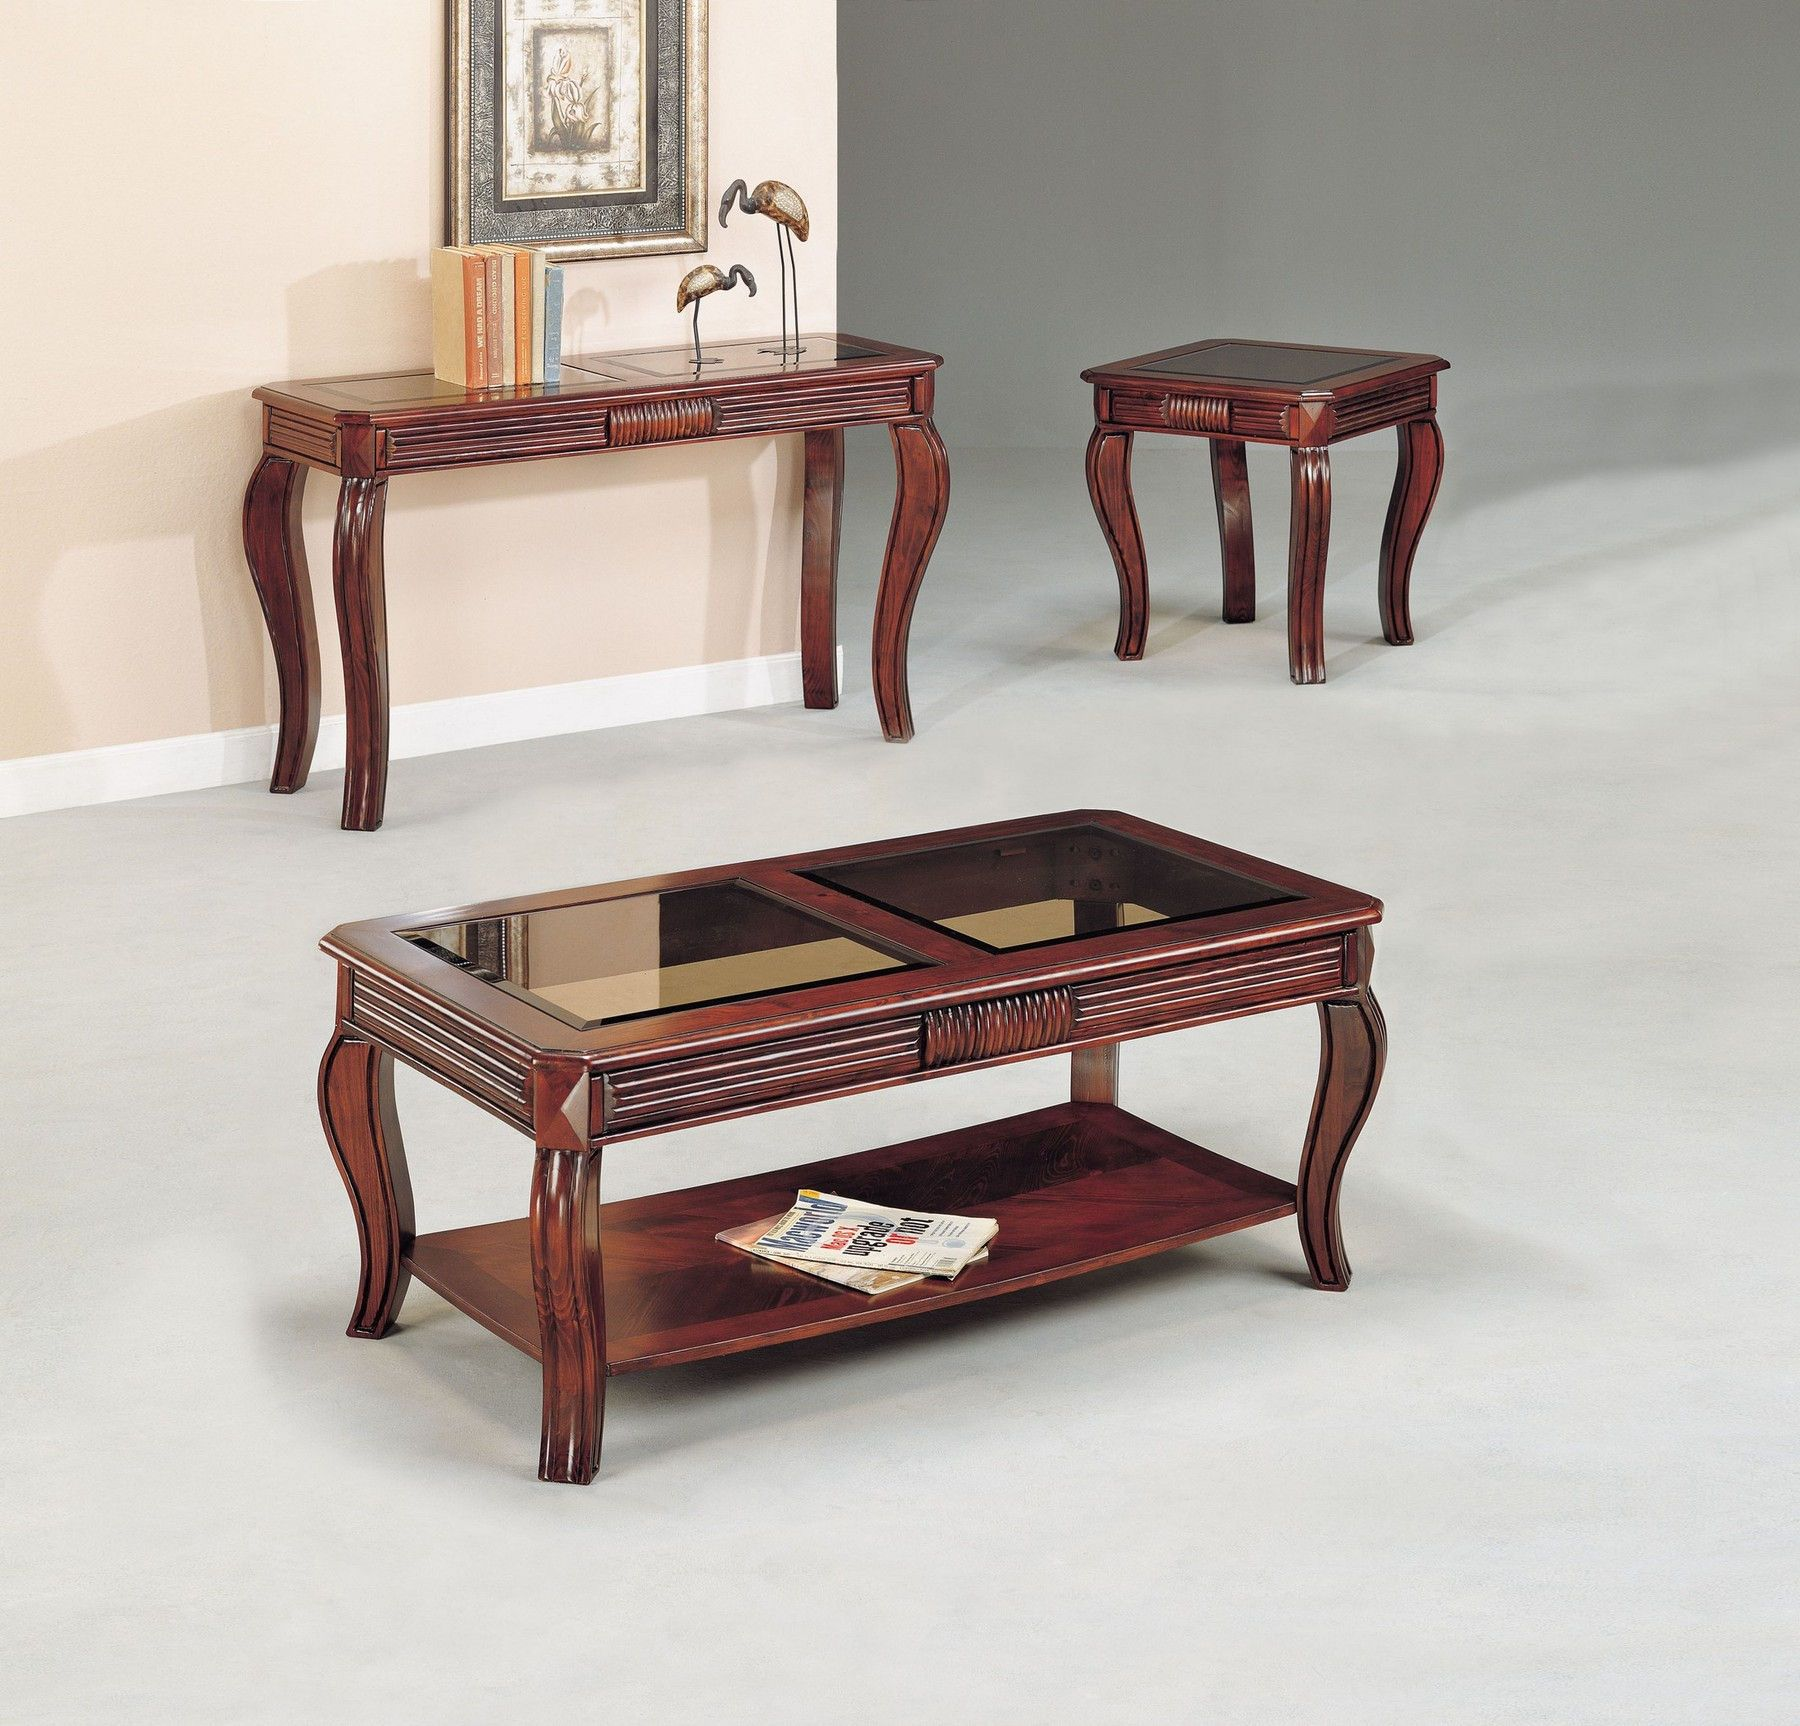 Overture Coffee Table 2 End Tables 06152 Acme Corporation Coffee Tables In 2021 Coffee Table Center Table Living Room Furniture [ 1726 x 1800 Pixel ]